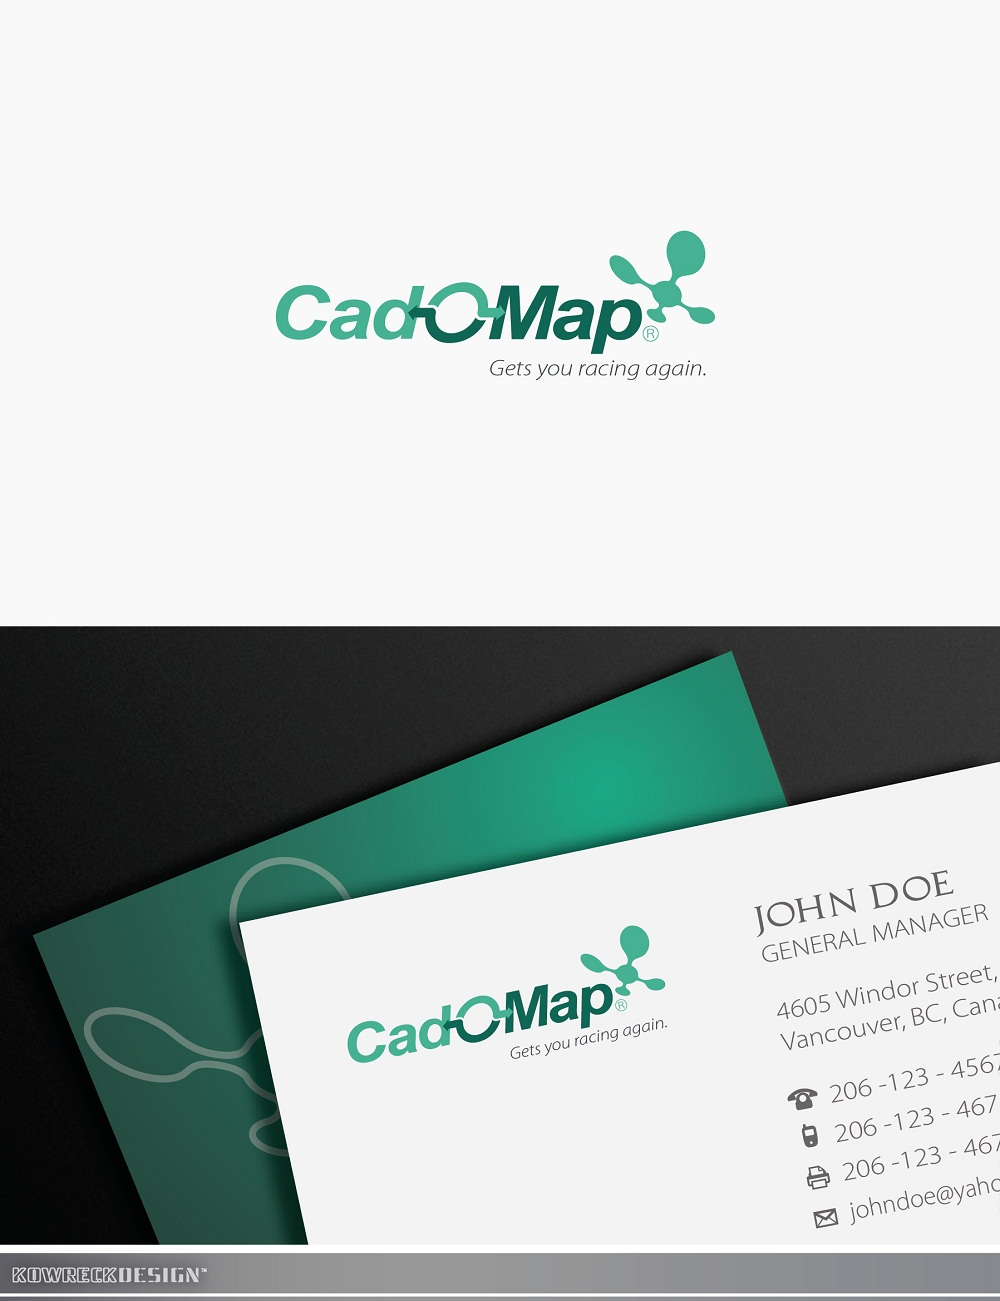 Logo Design by kowreck - Entry No. 142 in the Logo Design Contest Captivating Logo Design for CadOMap software product.